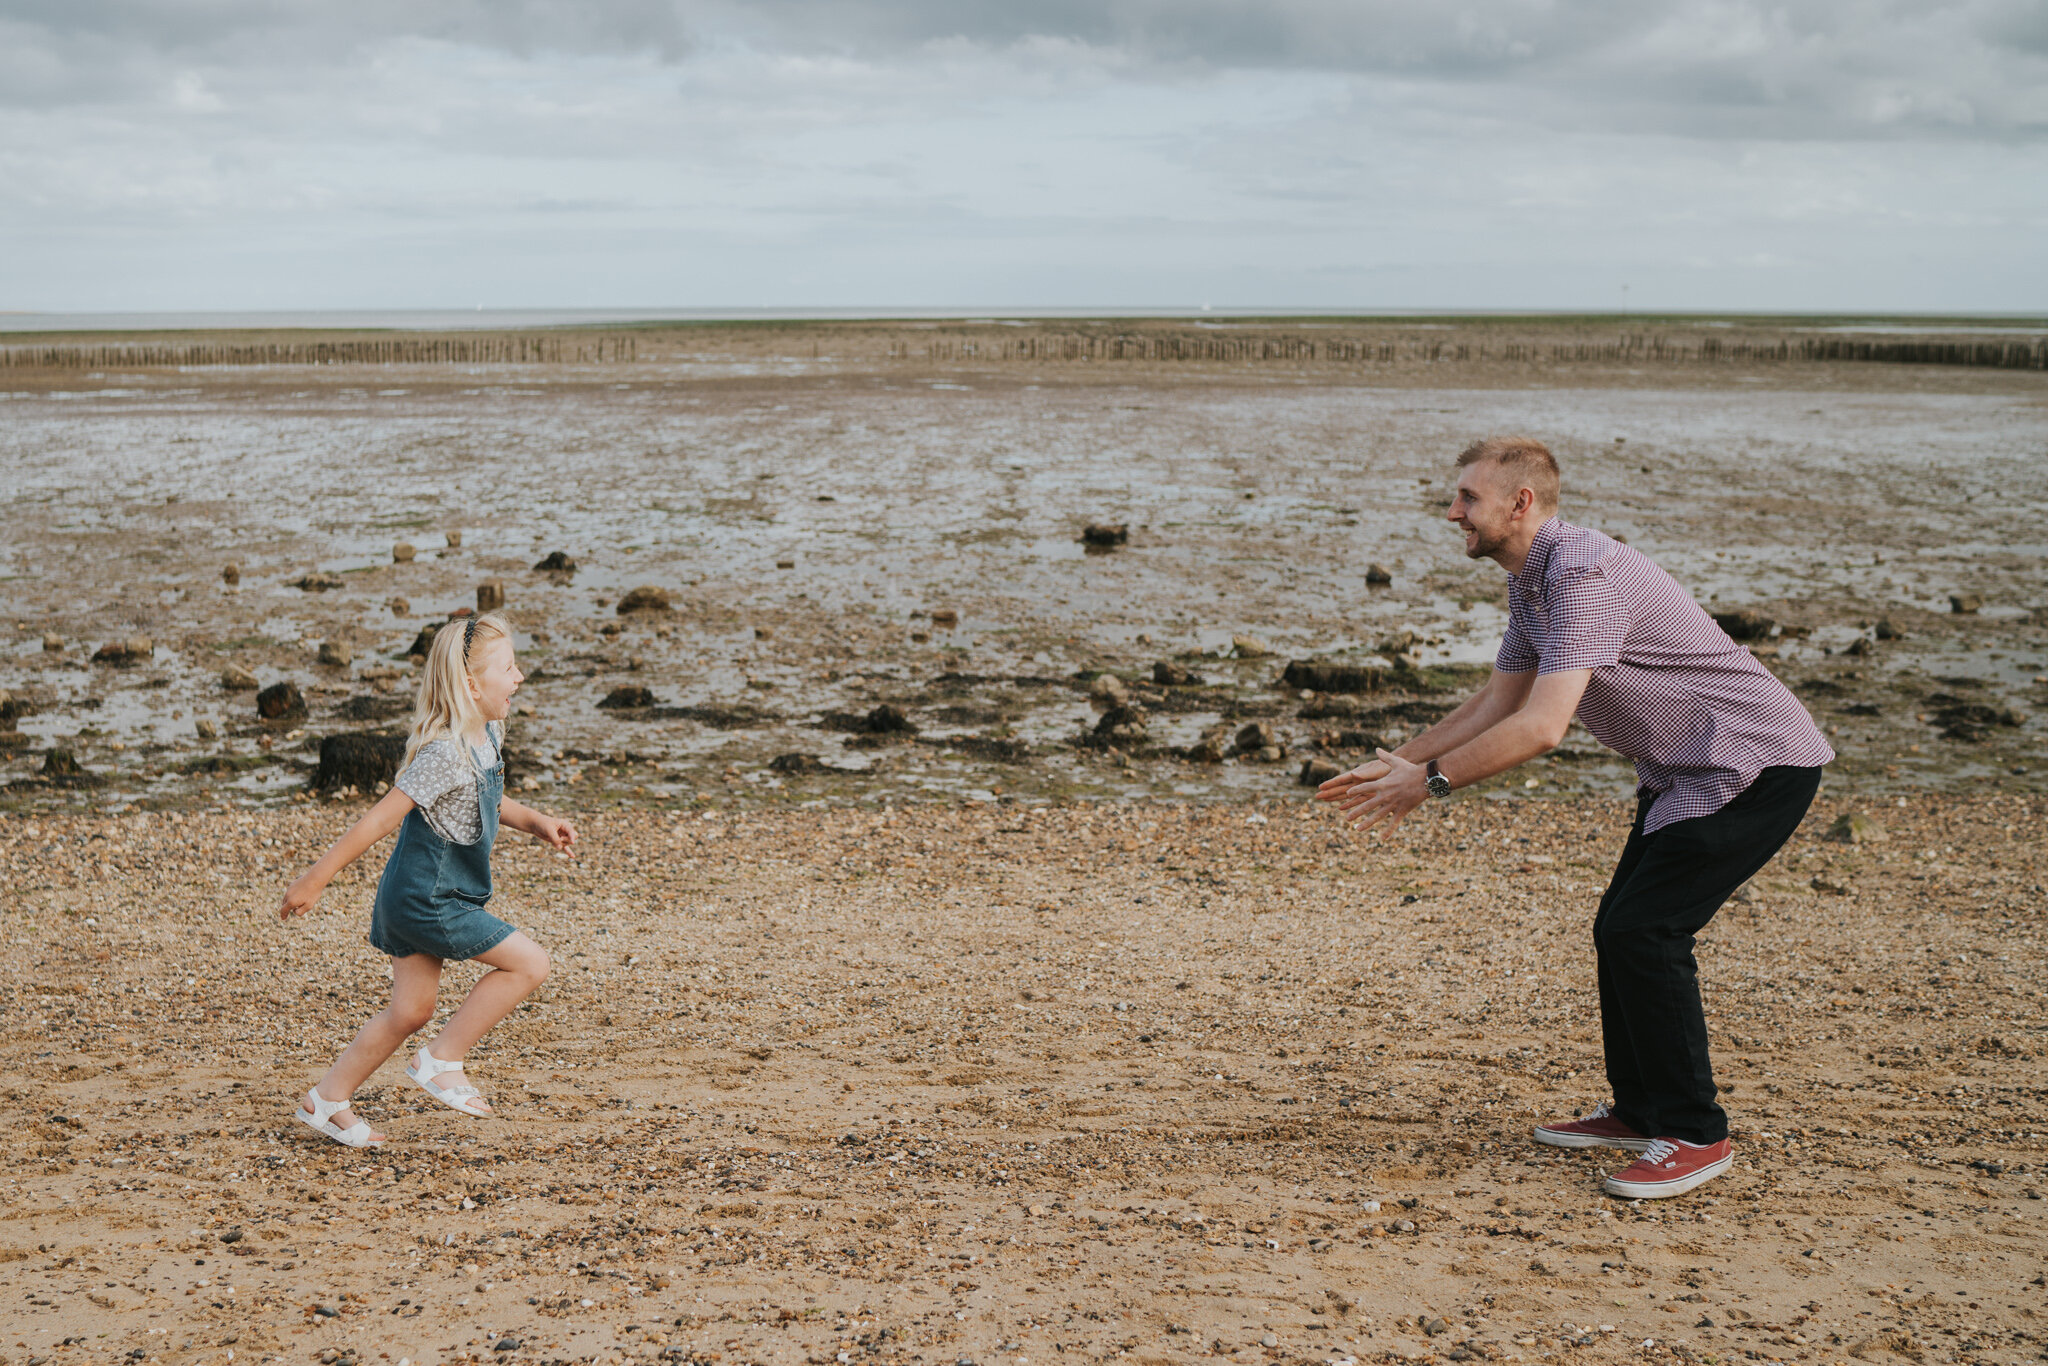 celebratory-beach-family-session-thomson-family-cudmore-grove-east-mersea-grace-elizabeth-colchester-essex-devon-suffolk-and-norfolk-alternative-wedding-and-family-photographer (22 of 53).jpg